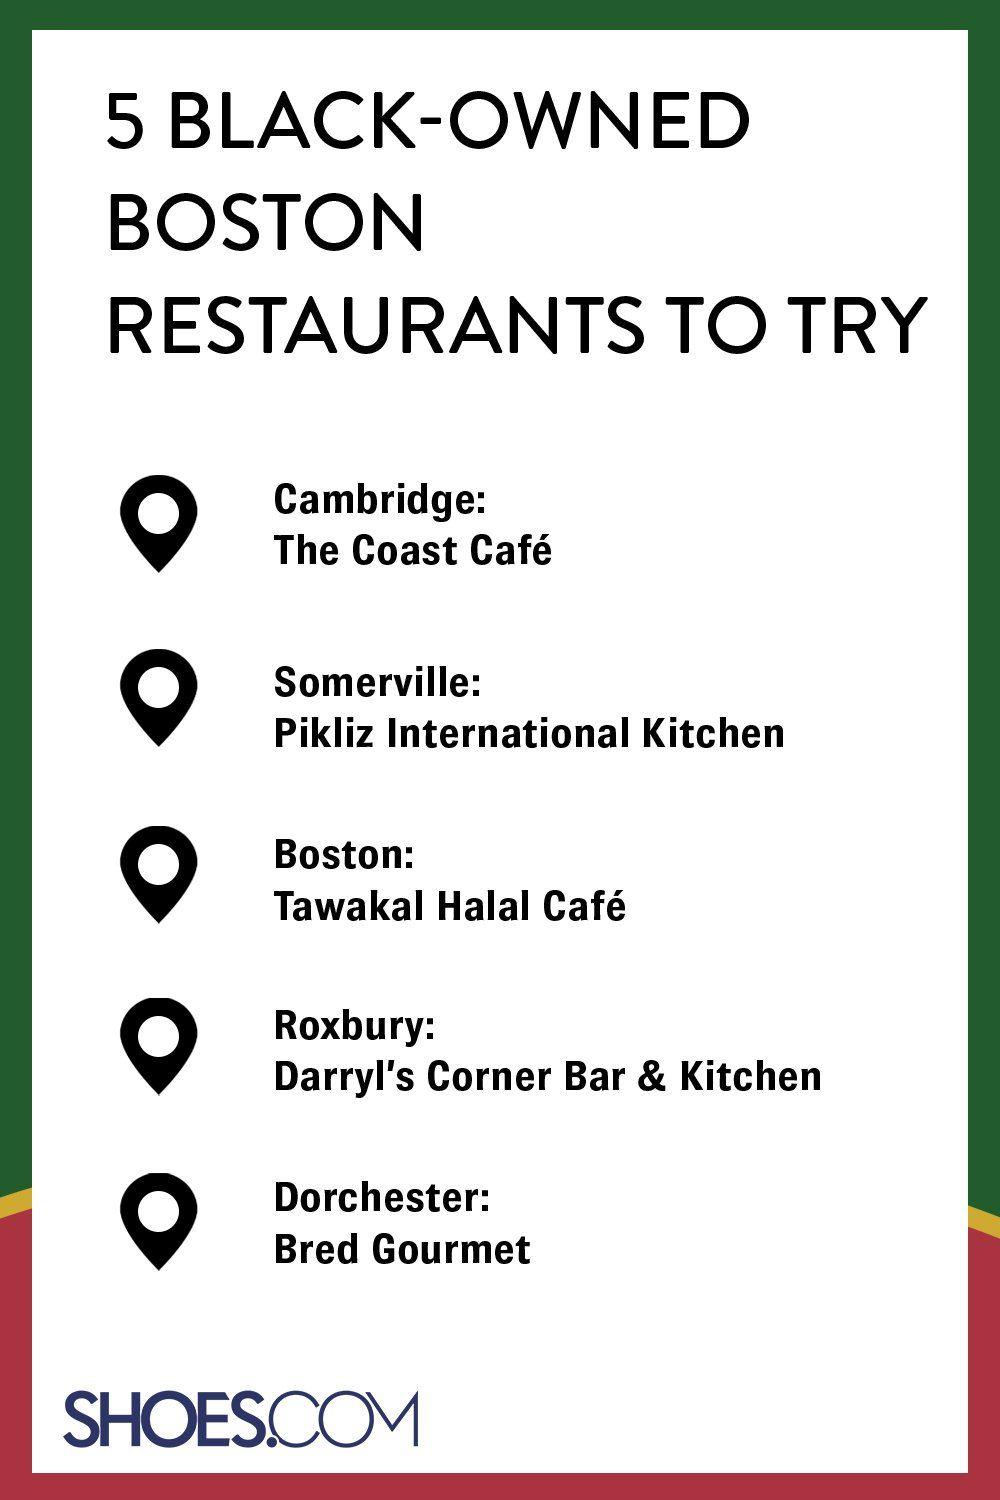 In Honor Of Juneteenth Here Are Five Black Owned Boston Restaurants To Try 1 Cambridge The Coast Cafe 2 Somervill In 2020 Shoes Com Free Shipping Shoes Dorchester